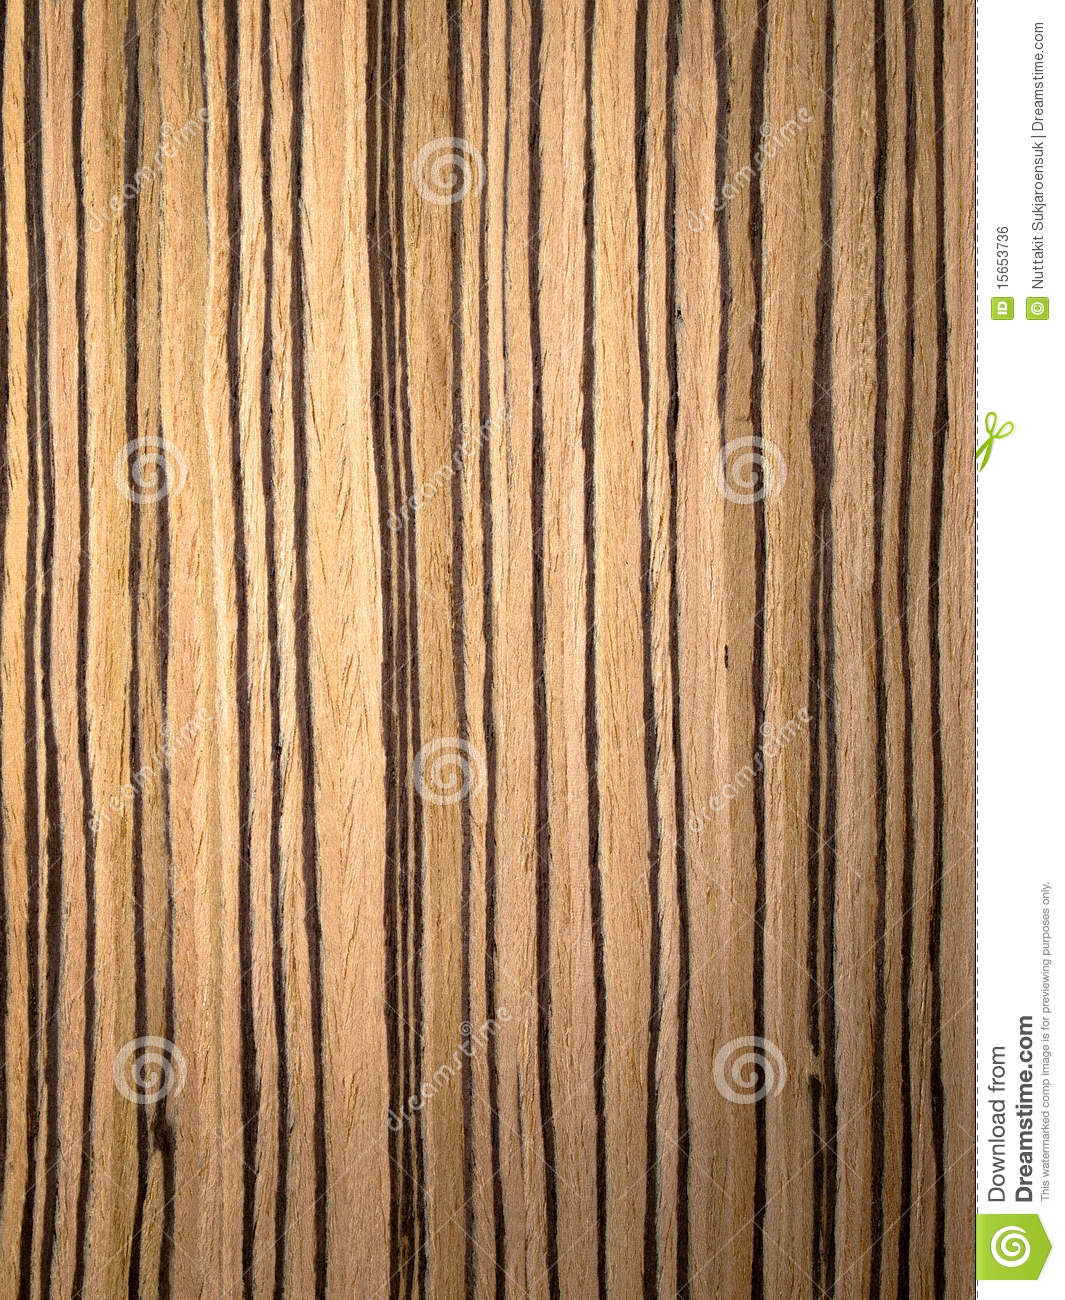 Zebrano Wood Texture Royalty Free Stock Image - Image: 15653736